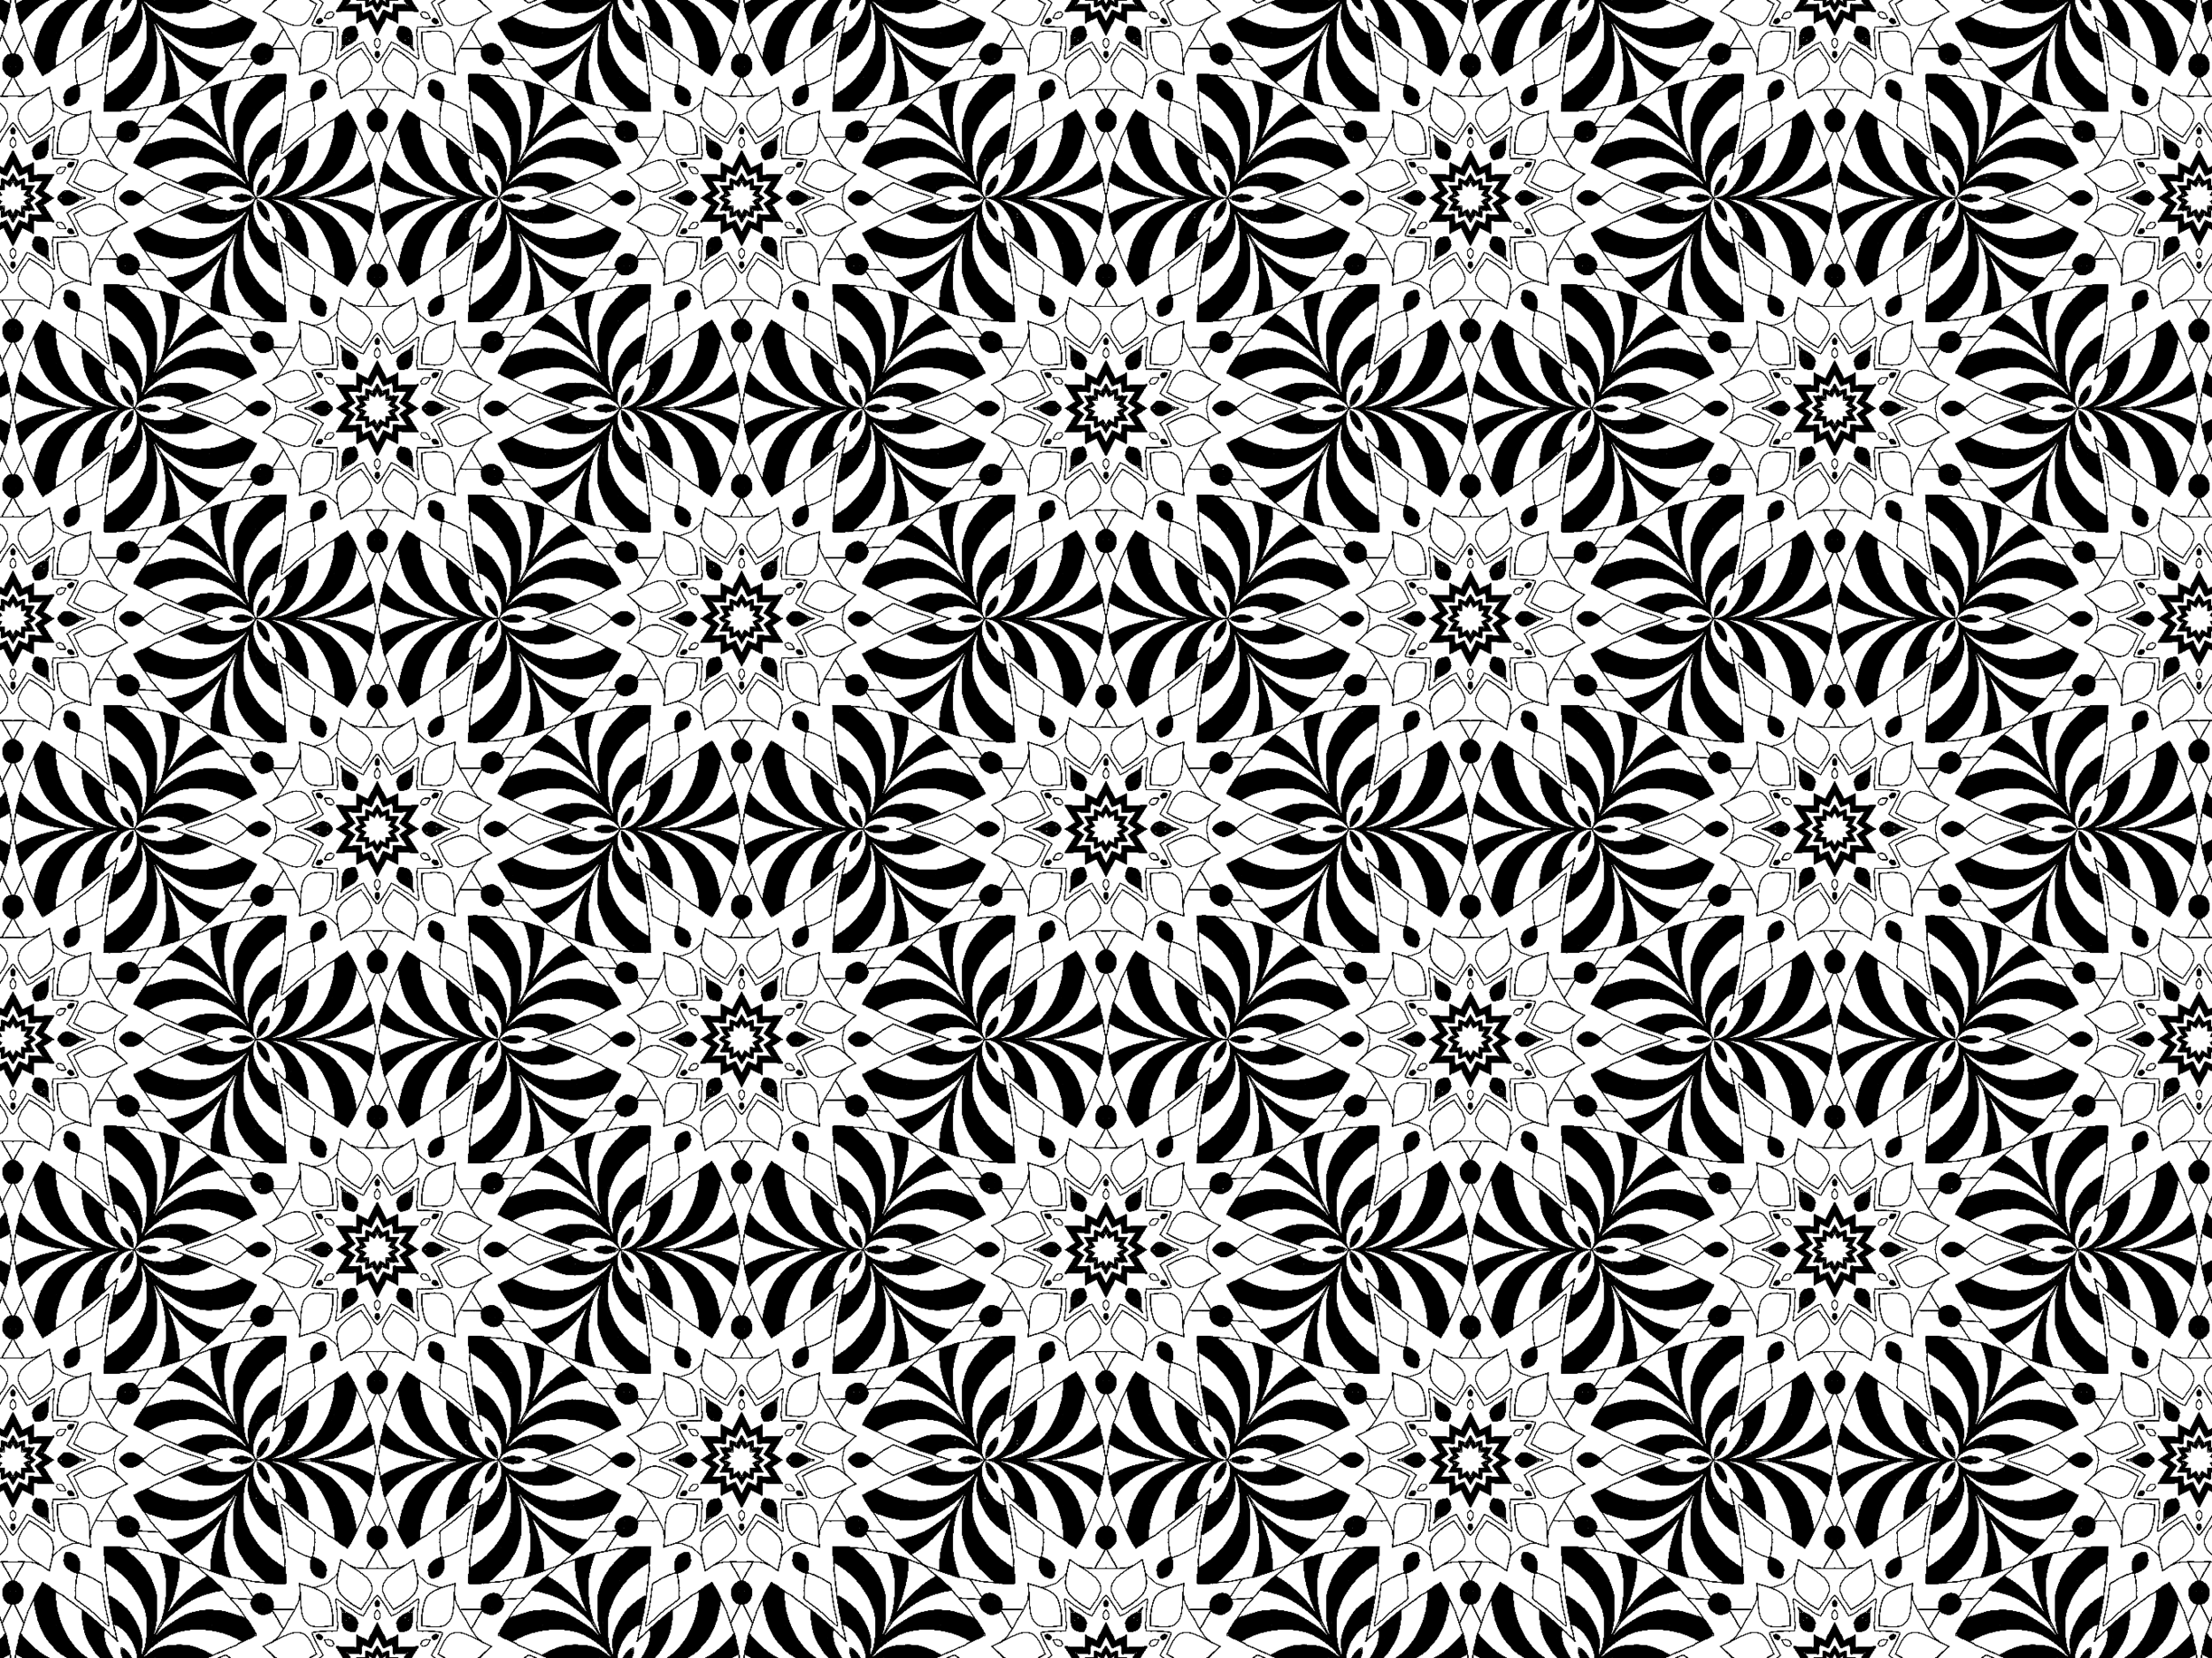 PNG image-DF811BF1383A-3.png